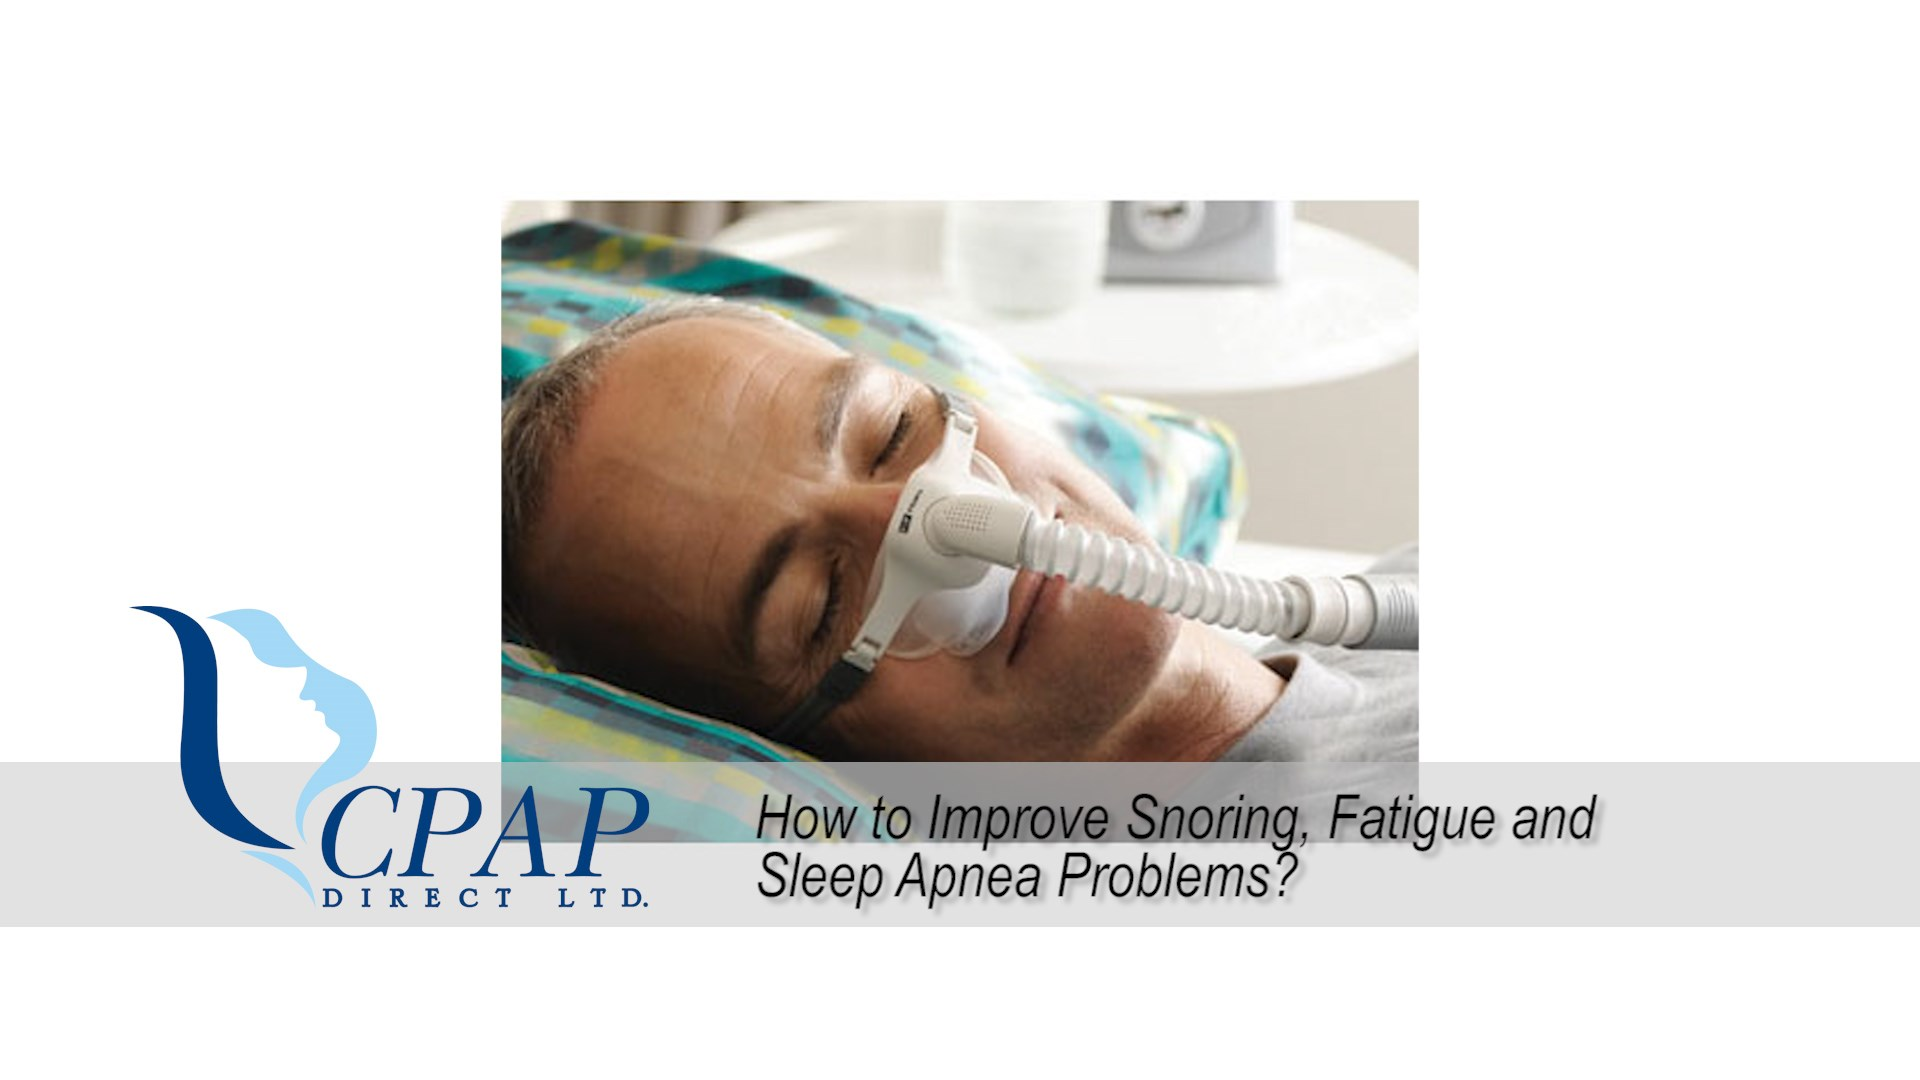 How to Reduce Snoring Fatigue and Sleep Apnea Problems